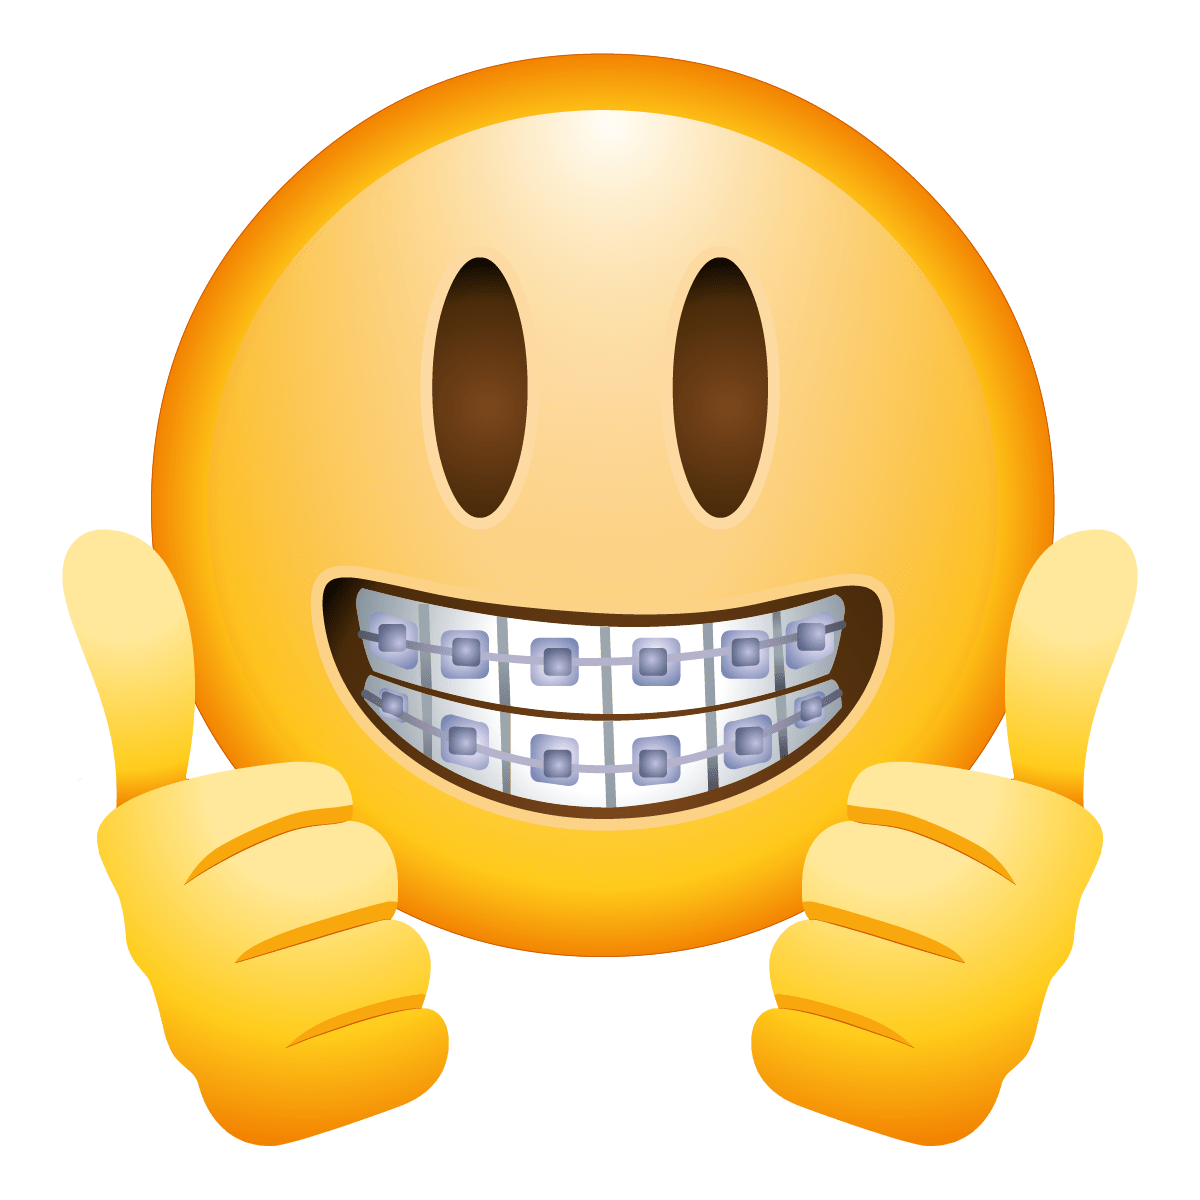 Braces face emoji transparent. Wow clipart emoticon